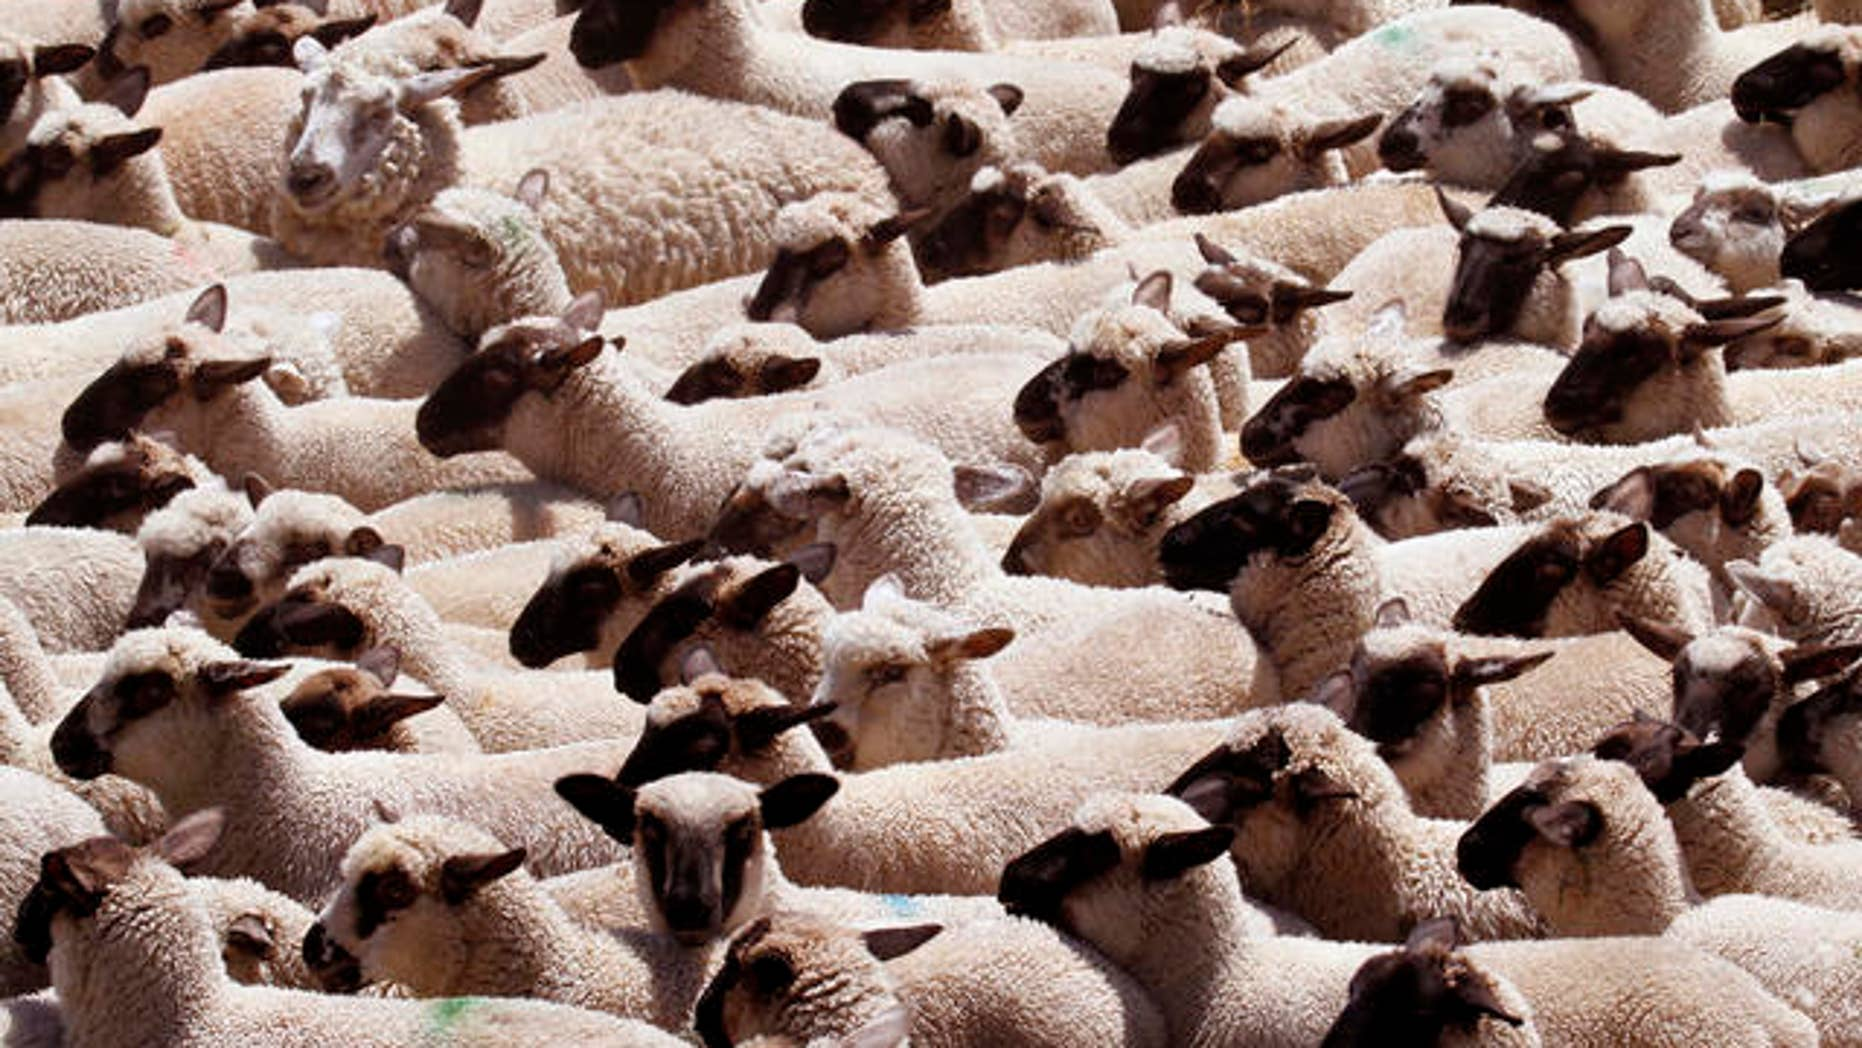 Scores of sheep flock together and head in the same direction after they are spooked by a nearby crop-dusting helicopter at a farm on Sauvies Island in Portland, Ore., Friday, June 18, 2010.(AP Photo/Don Ryan)